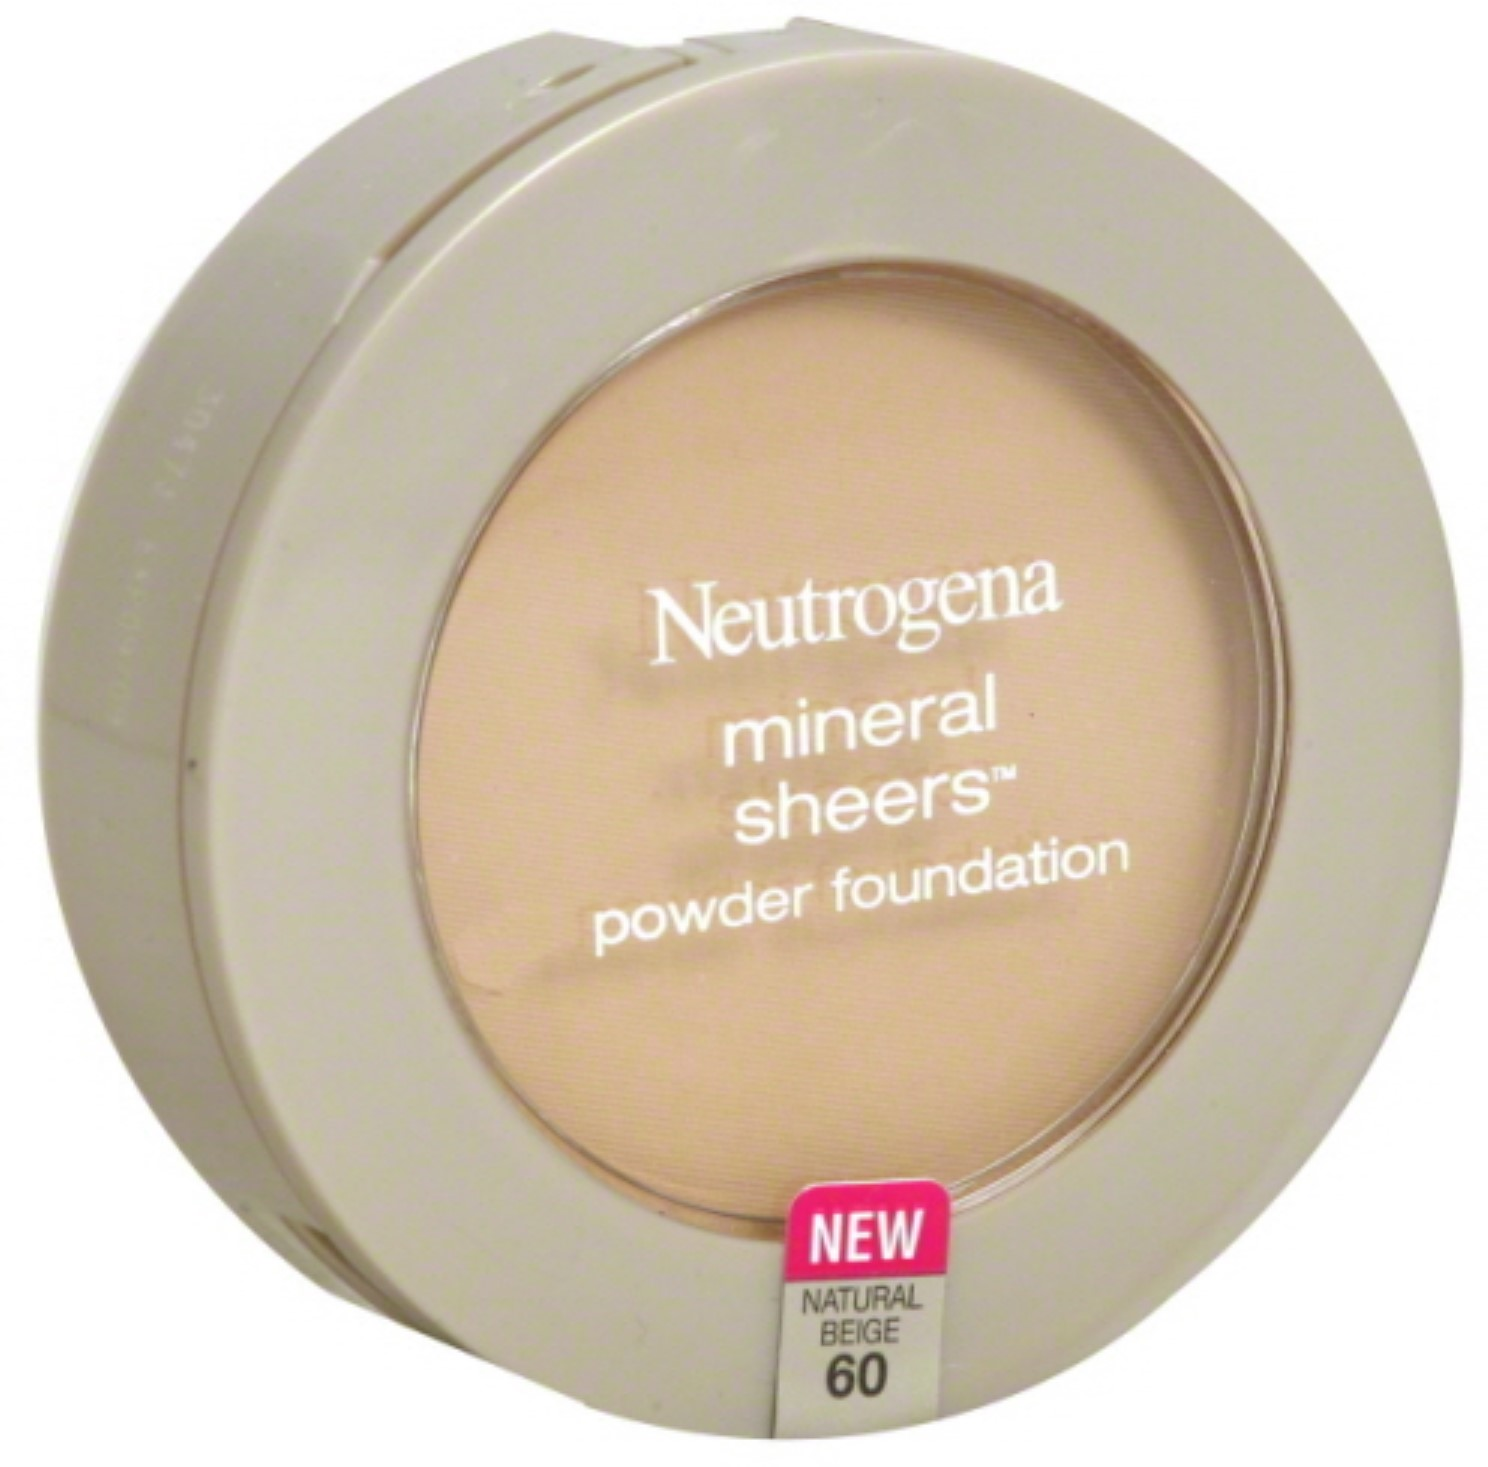 Neutrogena Mineral Sheers Powder Foundation, Natural Beige [60], 0.34 oz (Pack of 2)